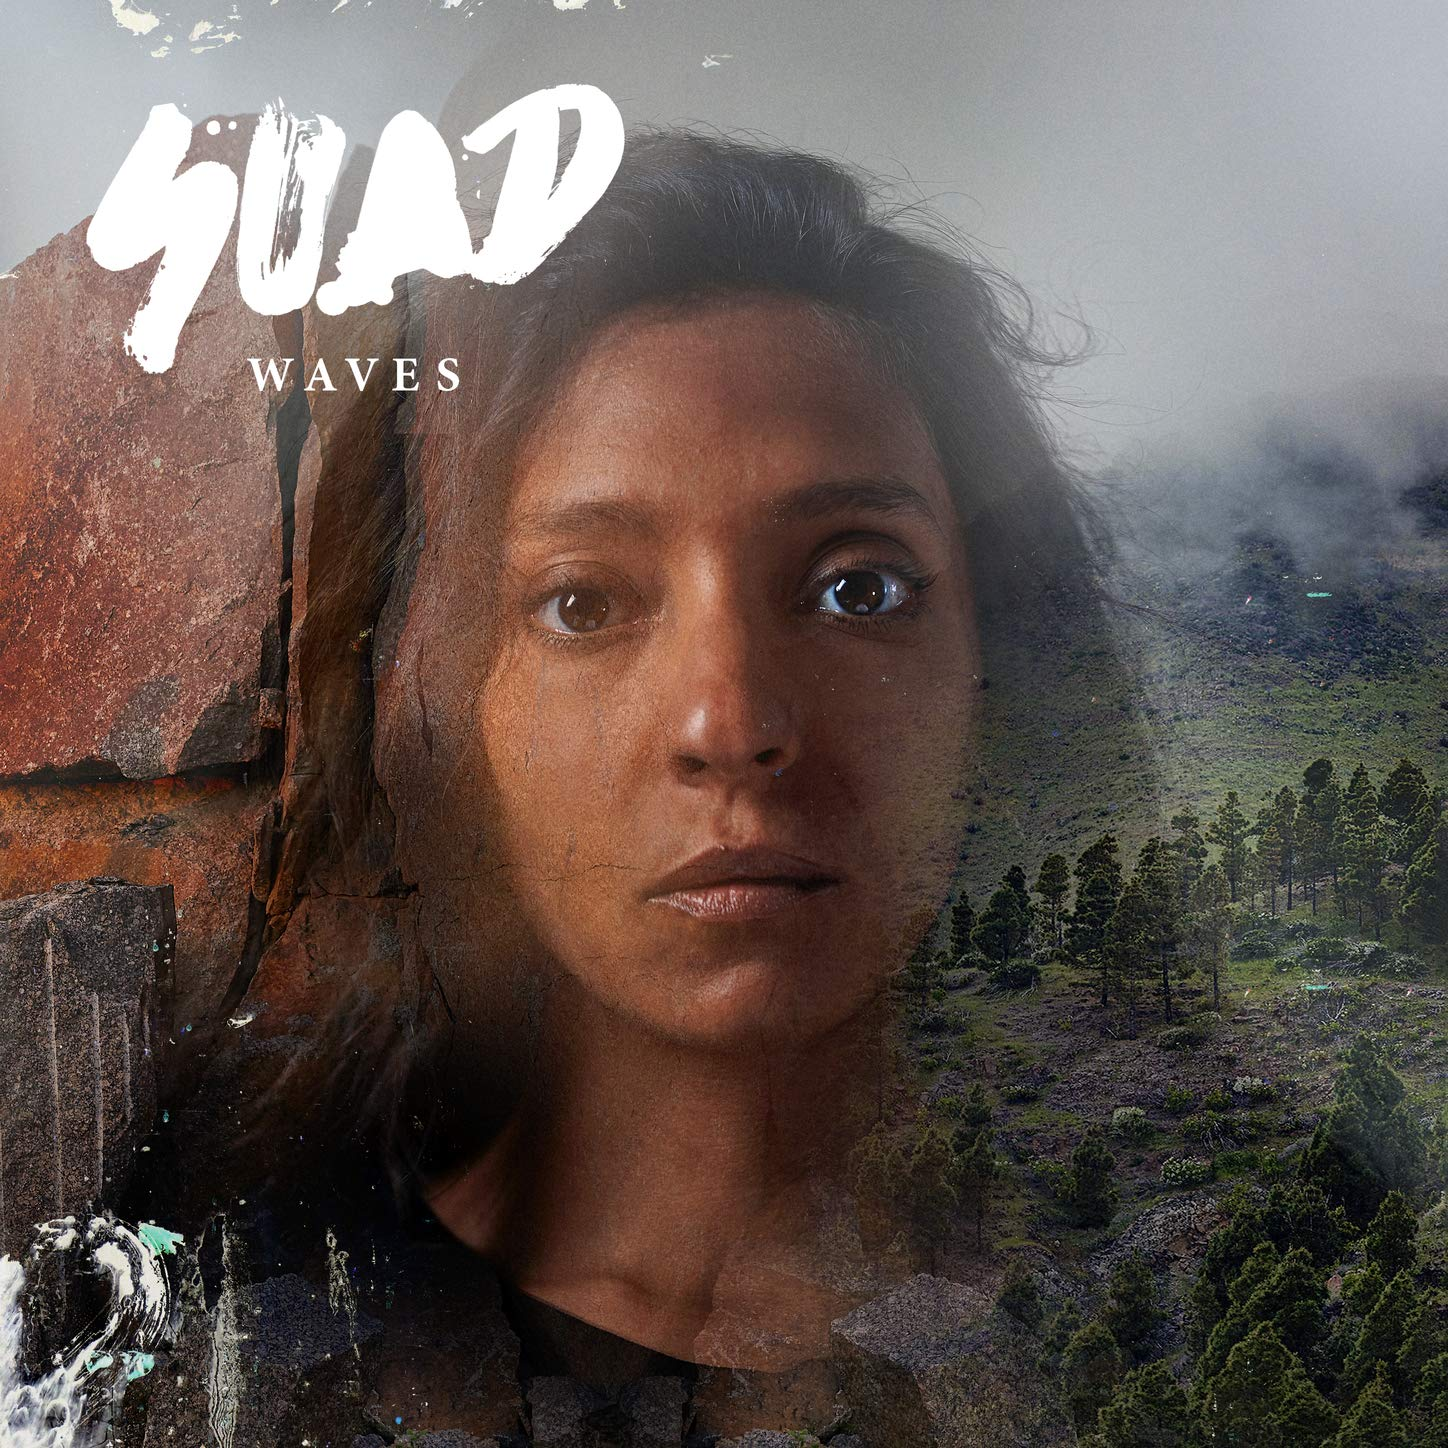 Suad - Waves (2021) [FLAC] Download